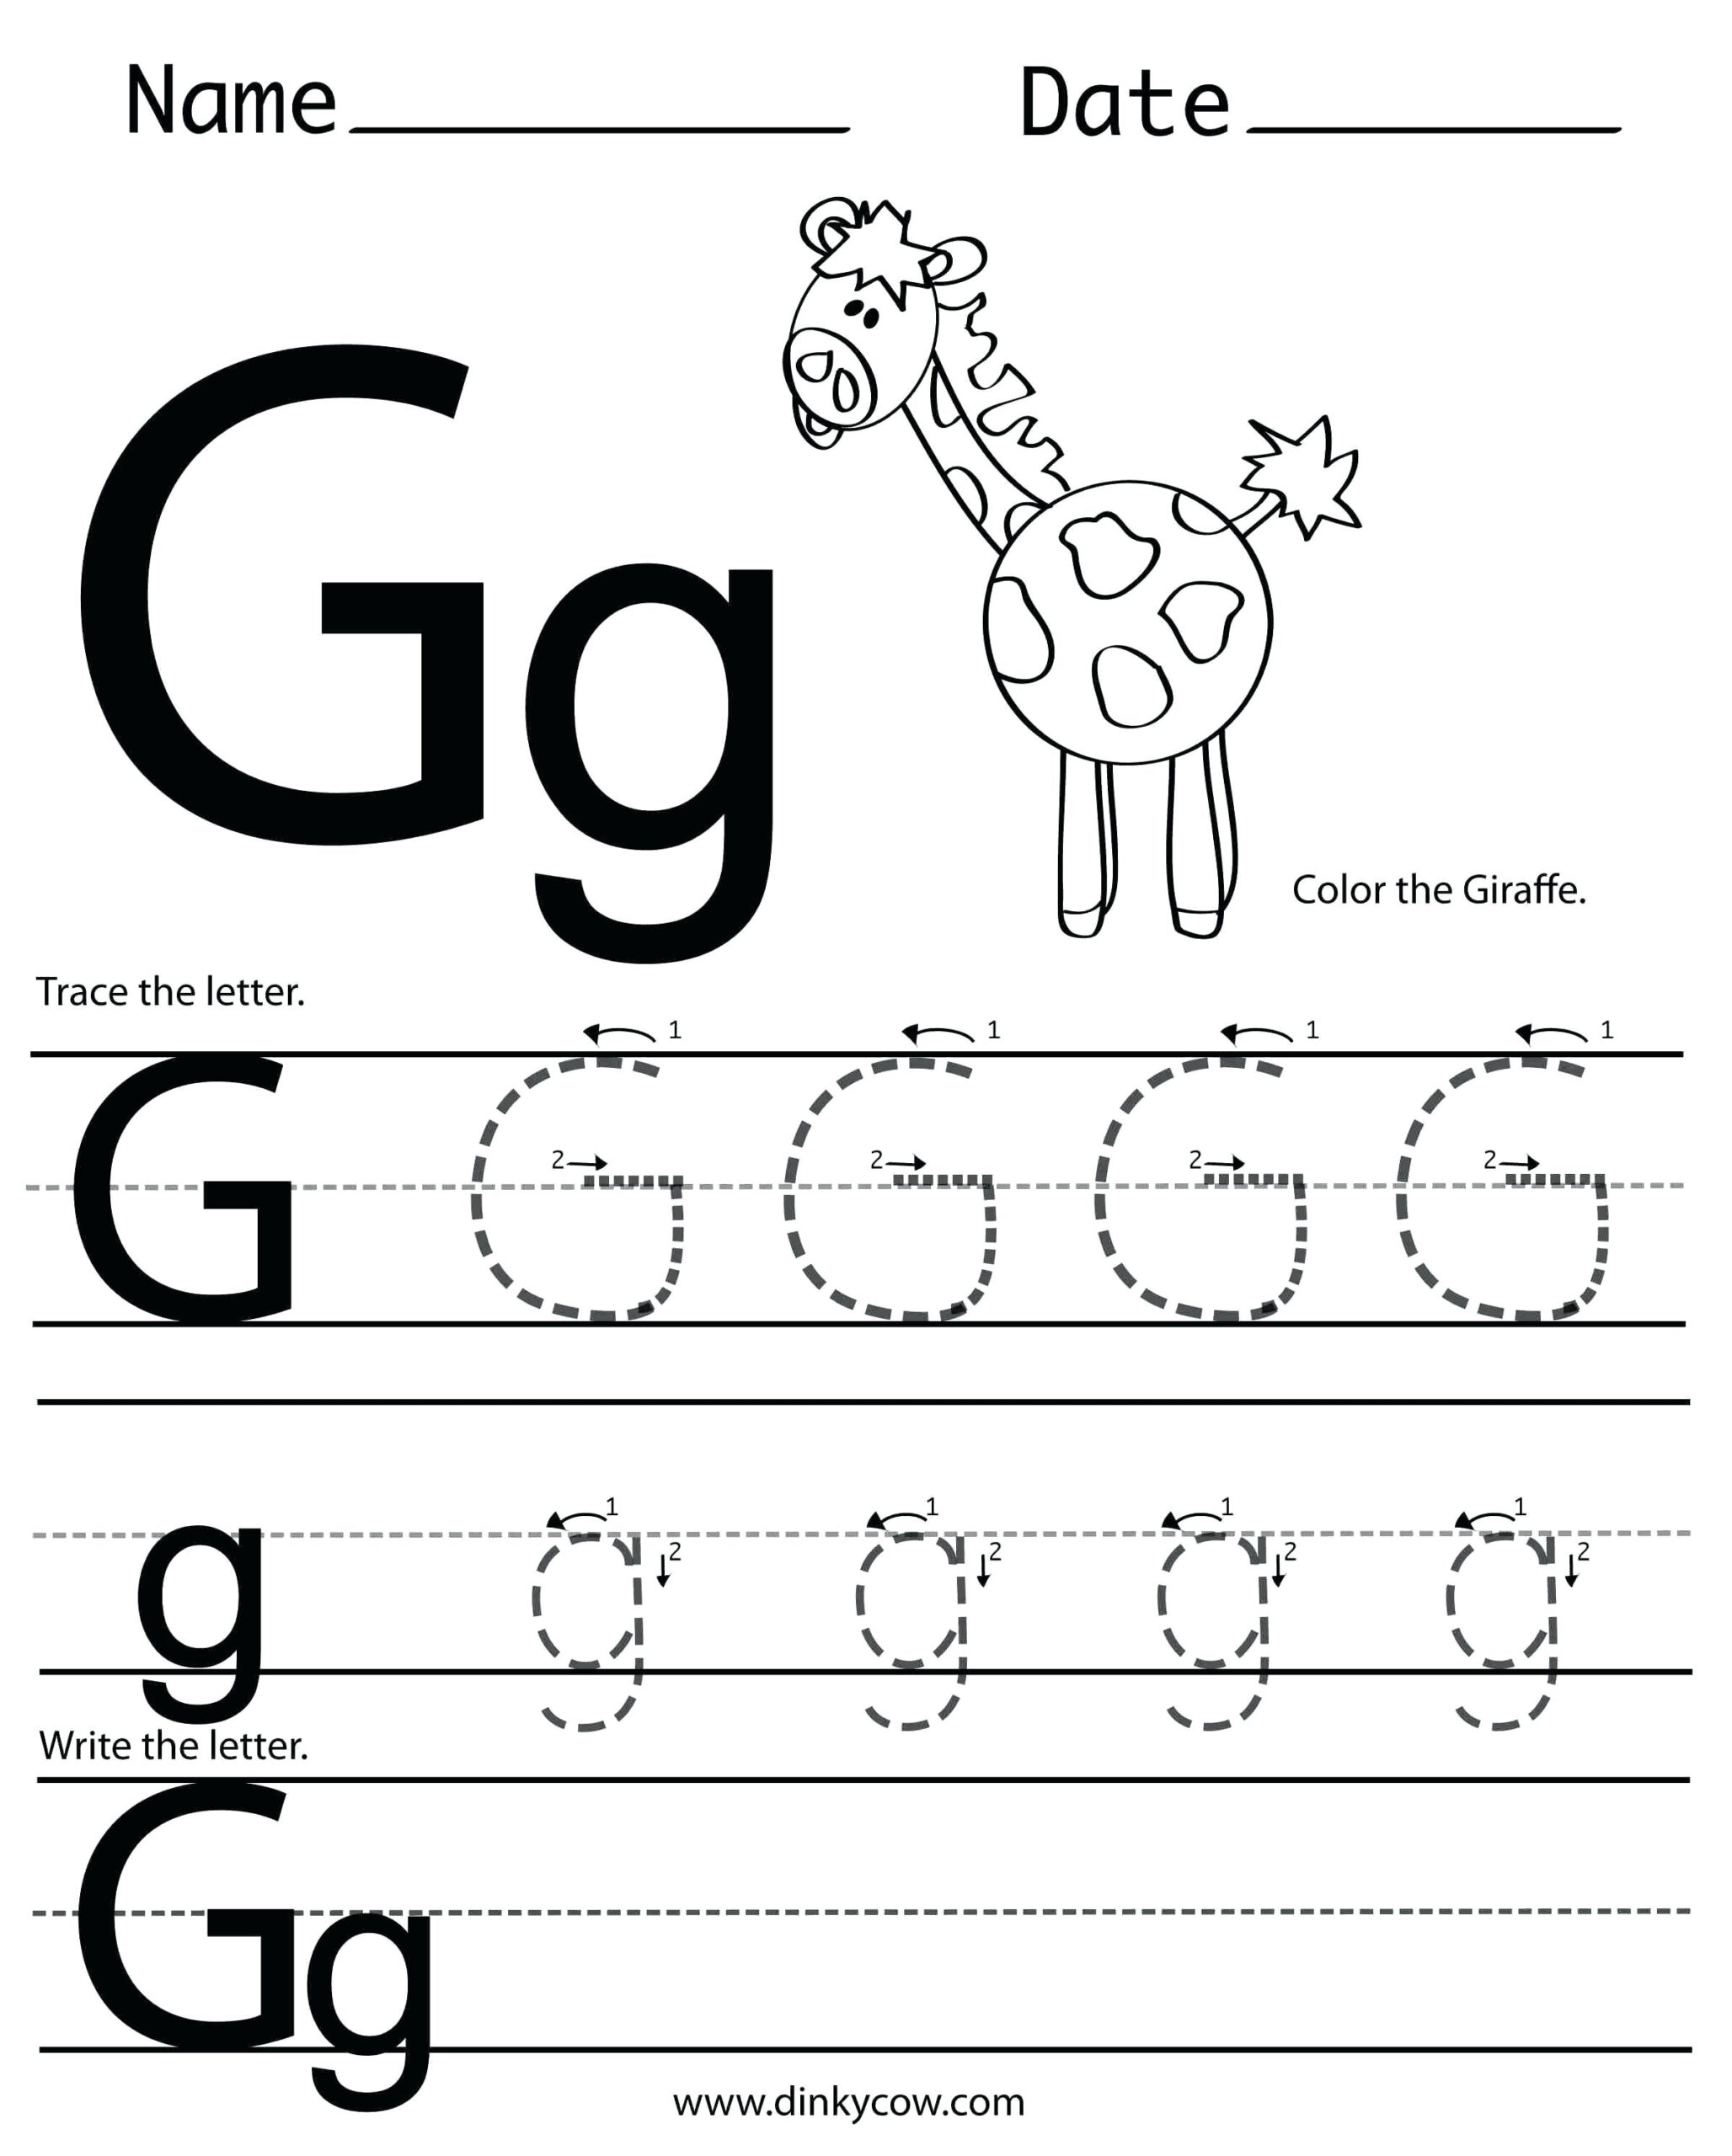 Coloring Pages : Incredible Letter G Coloring Pages Picture pertaining to Letter G Worksheets For Preschool